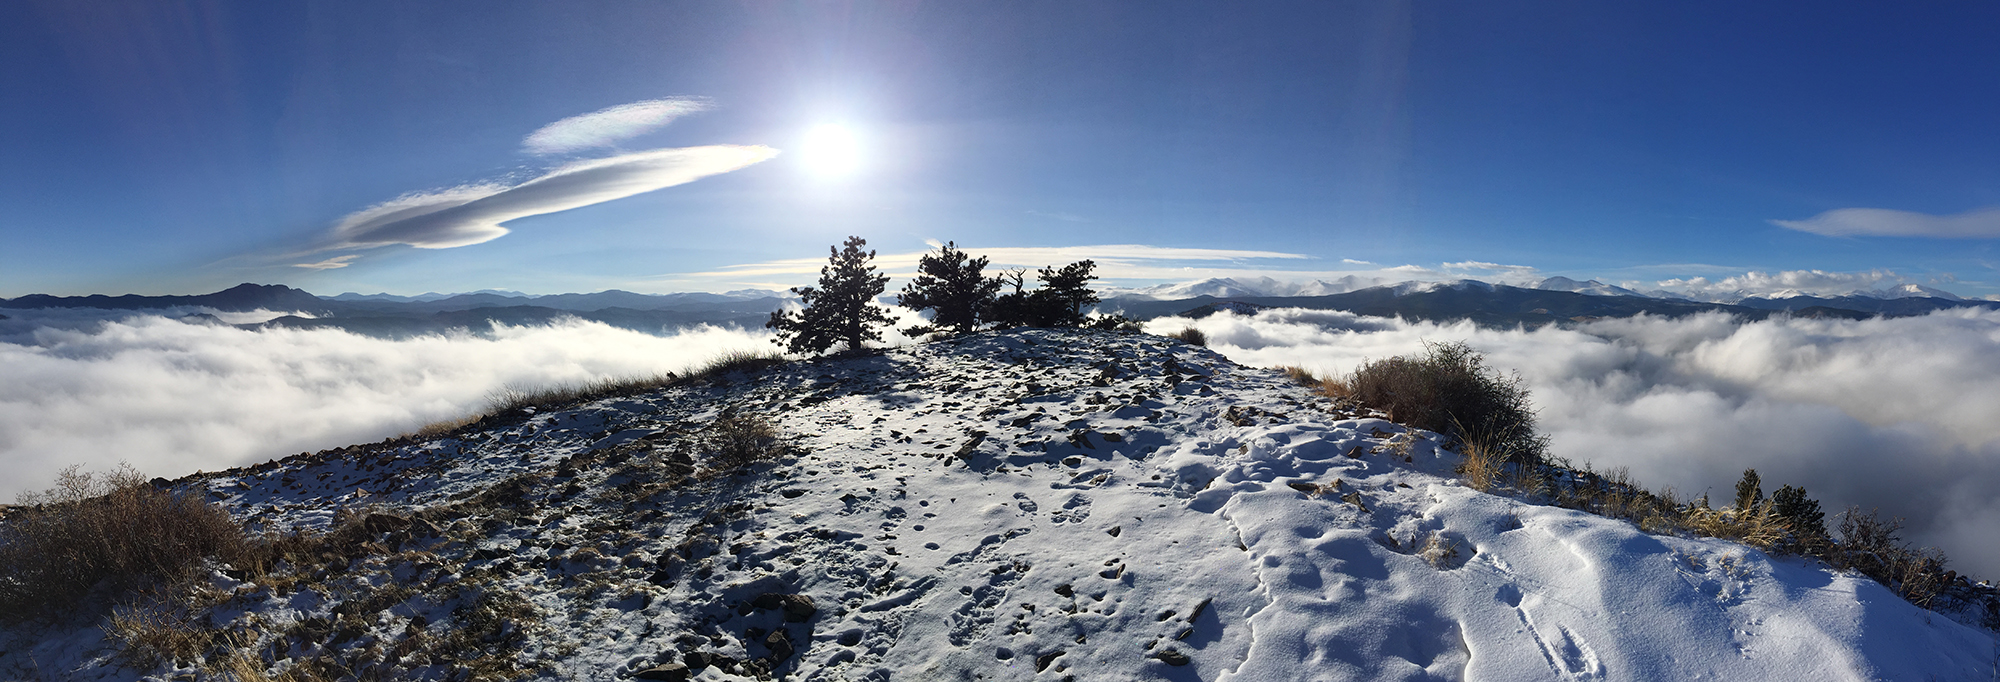 Sugarloaf Pano, iPhone 6. Sugarloaf Mountain, Colorado, 2015